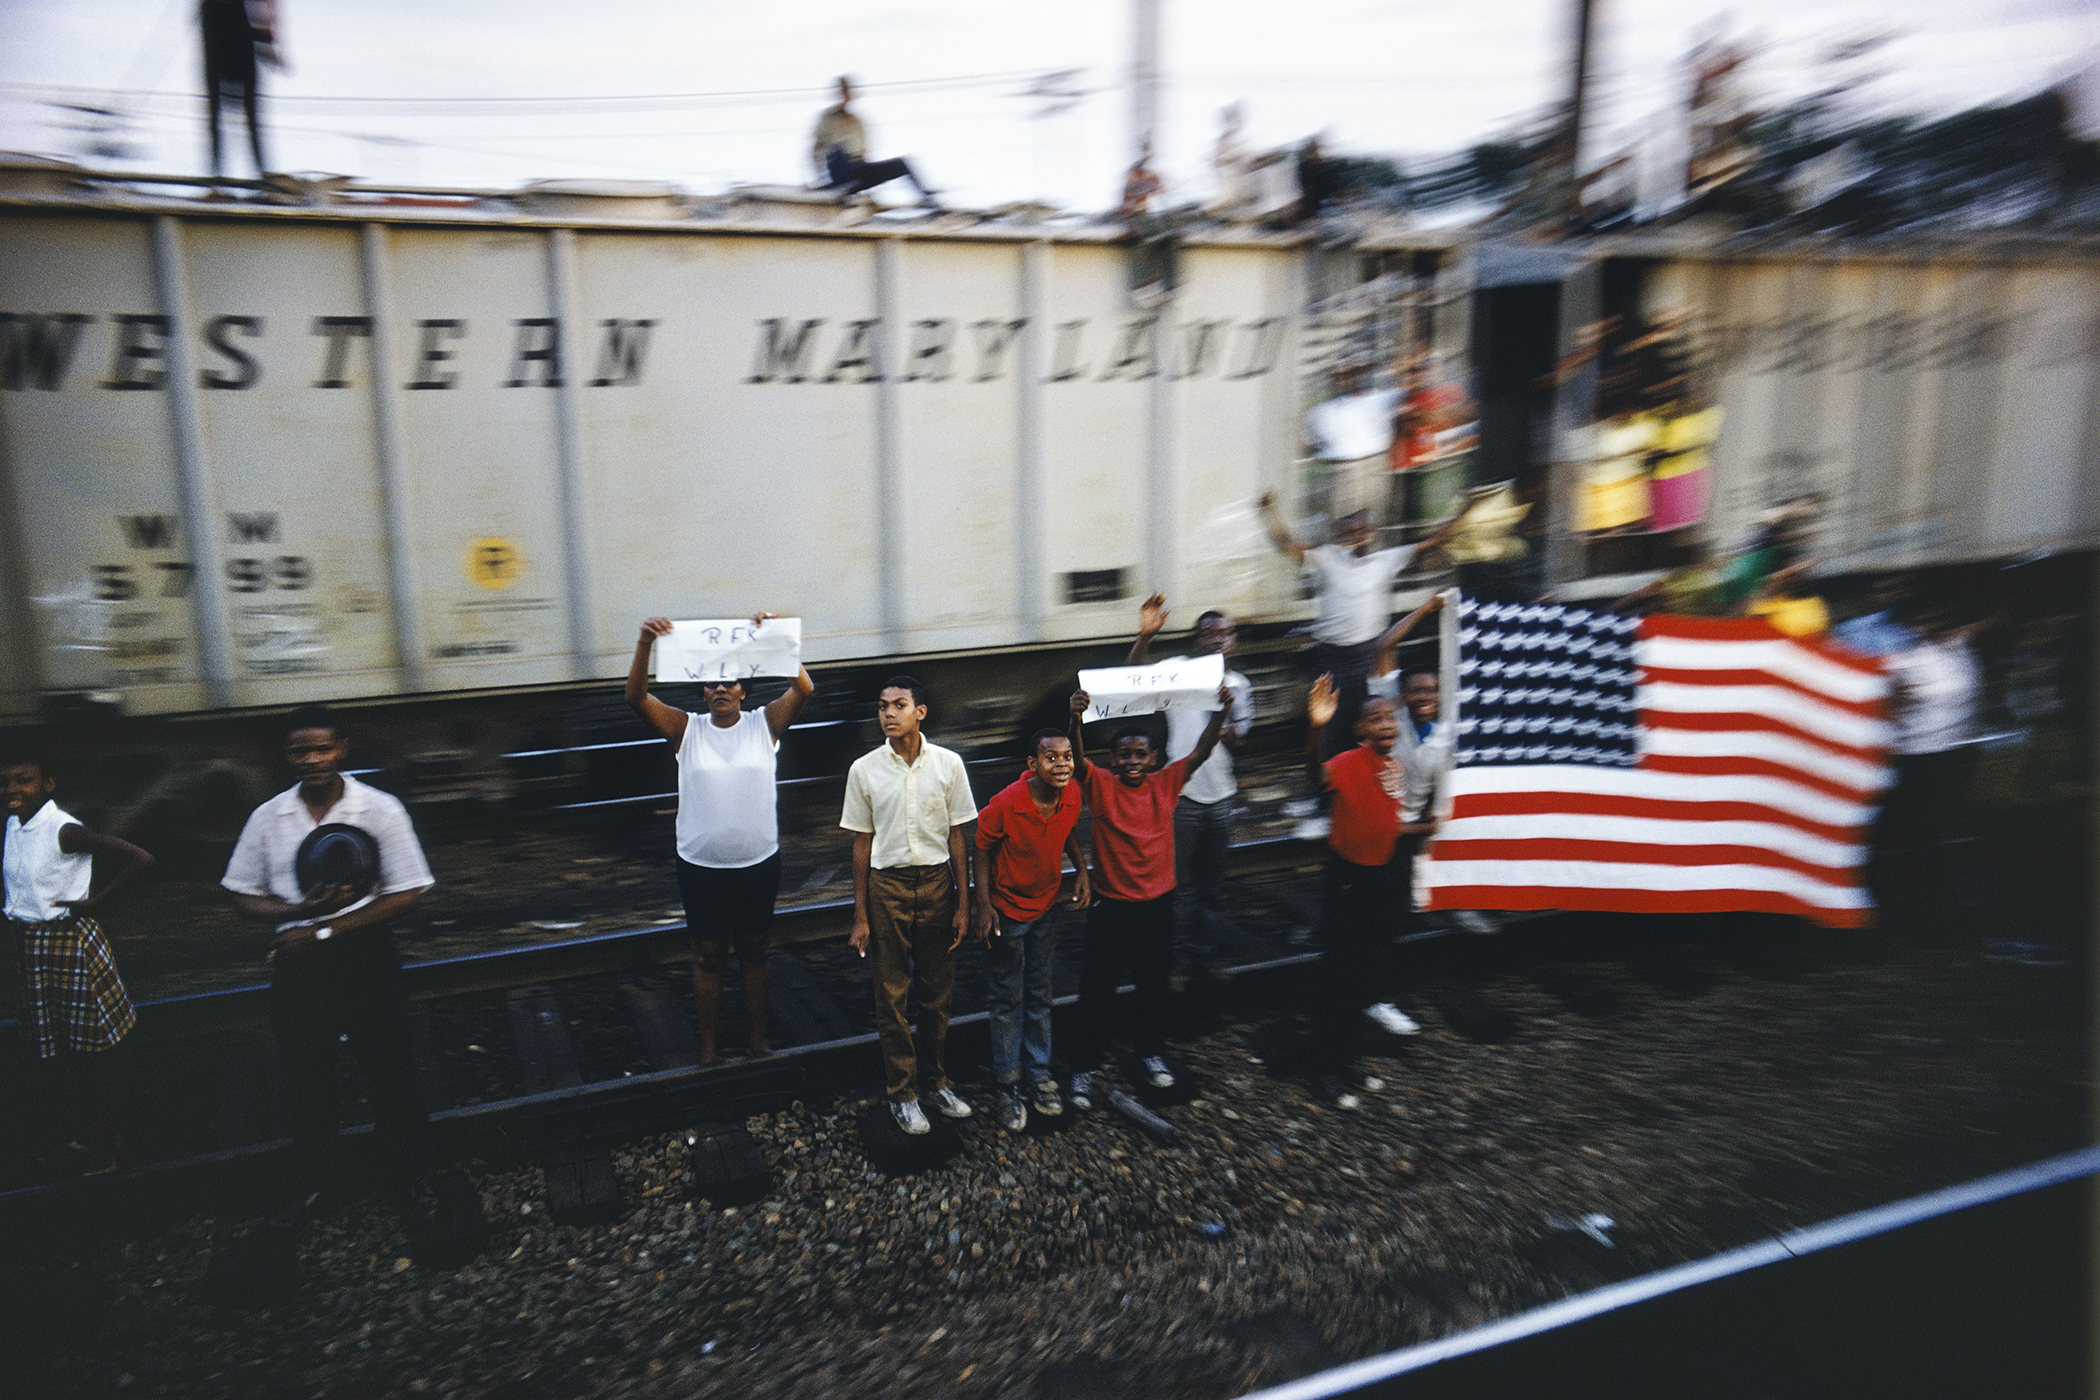 Paul Fusco, Untitled, from the series RFK Funeral Train, 1968 © Magnum Photos, courtesy Danziger Gallery